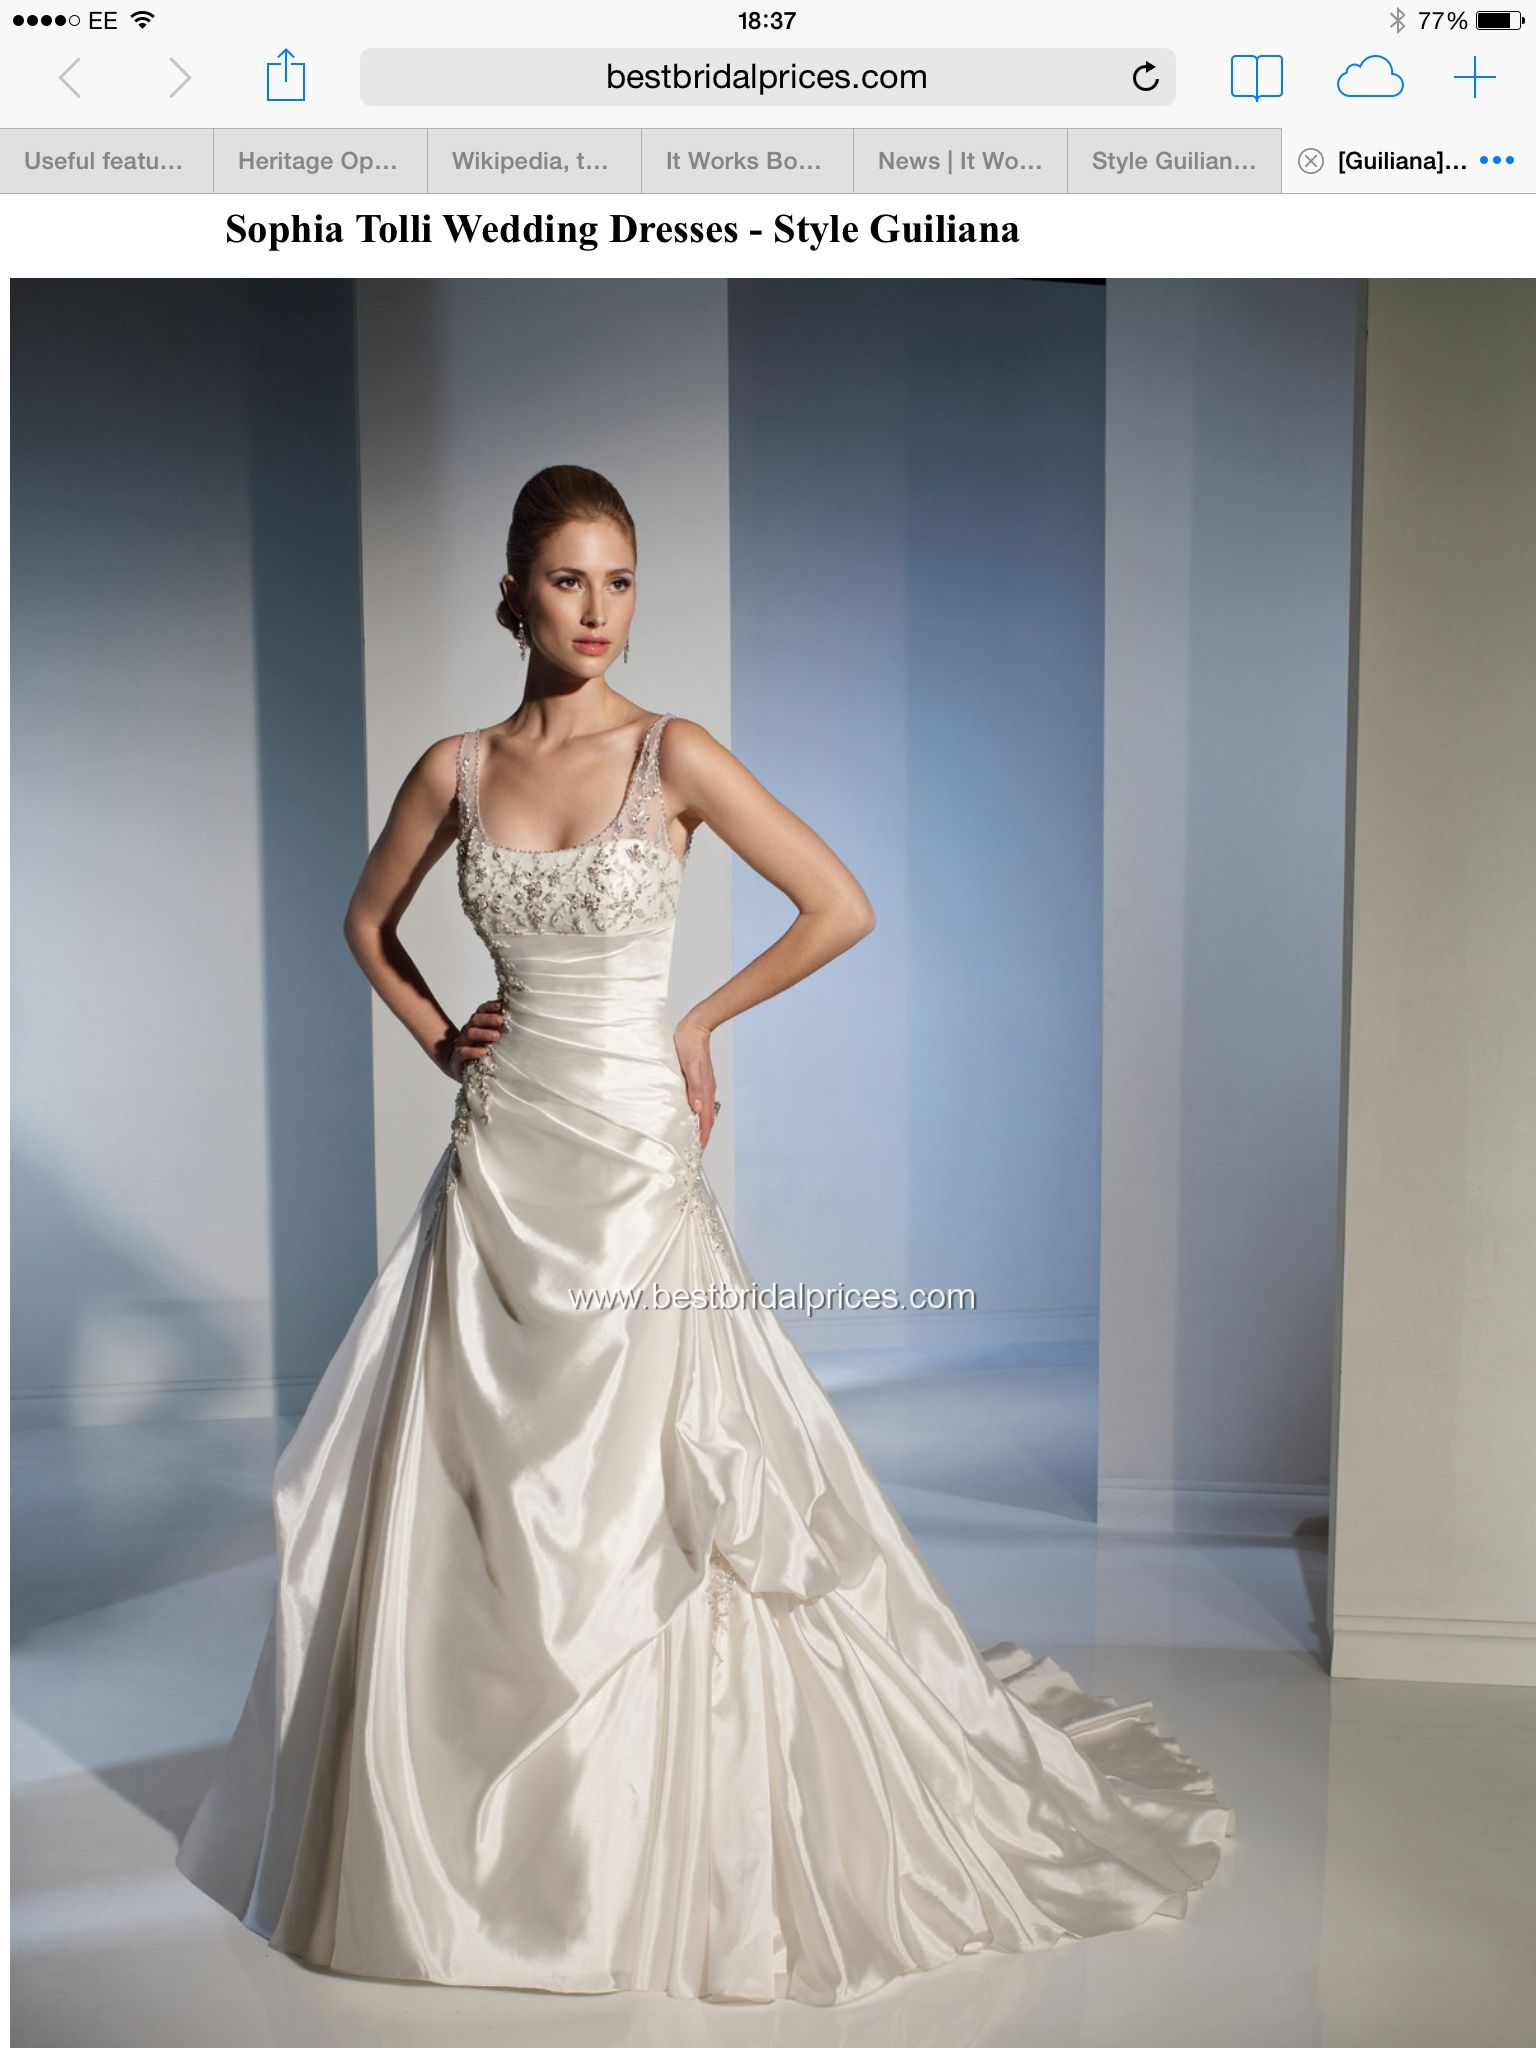 Beautiful Wedding Dresses Sophia Tolli Model - All Wedding Dresses ...